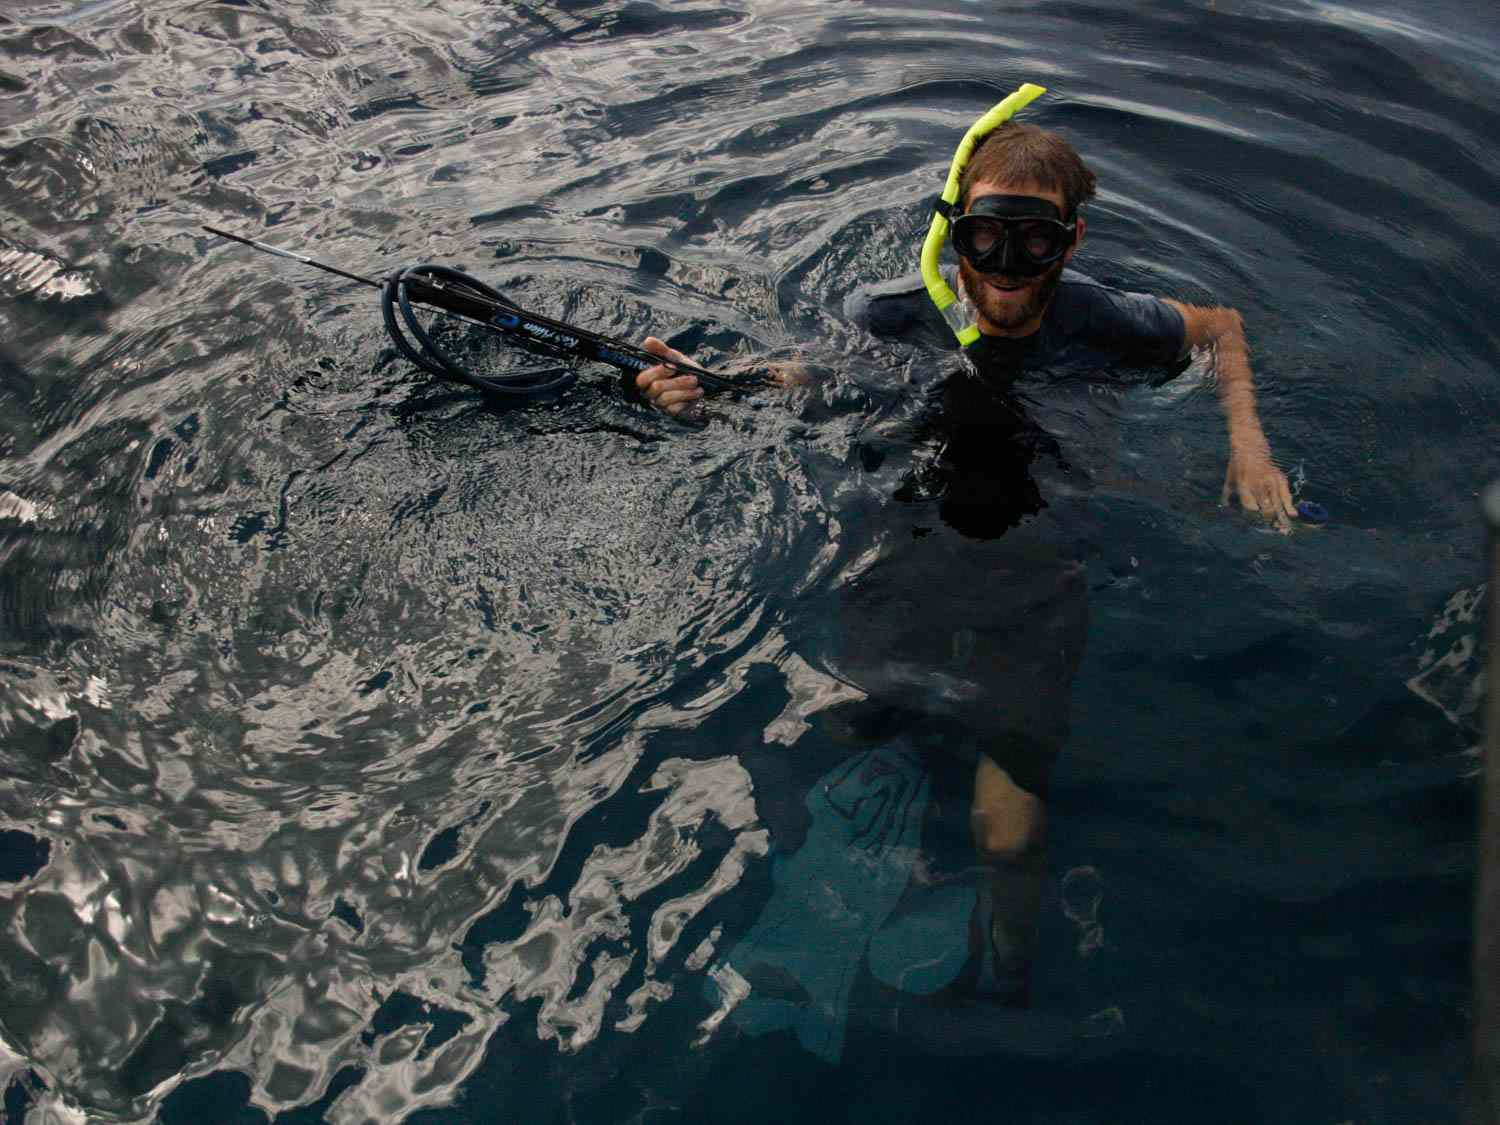 20150615-cooking-on-a-boat-alex-spearfishing-lauren-sloss.jpg